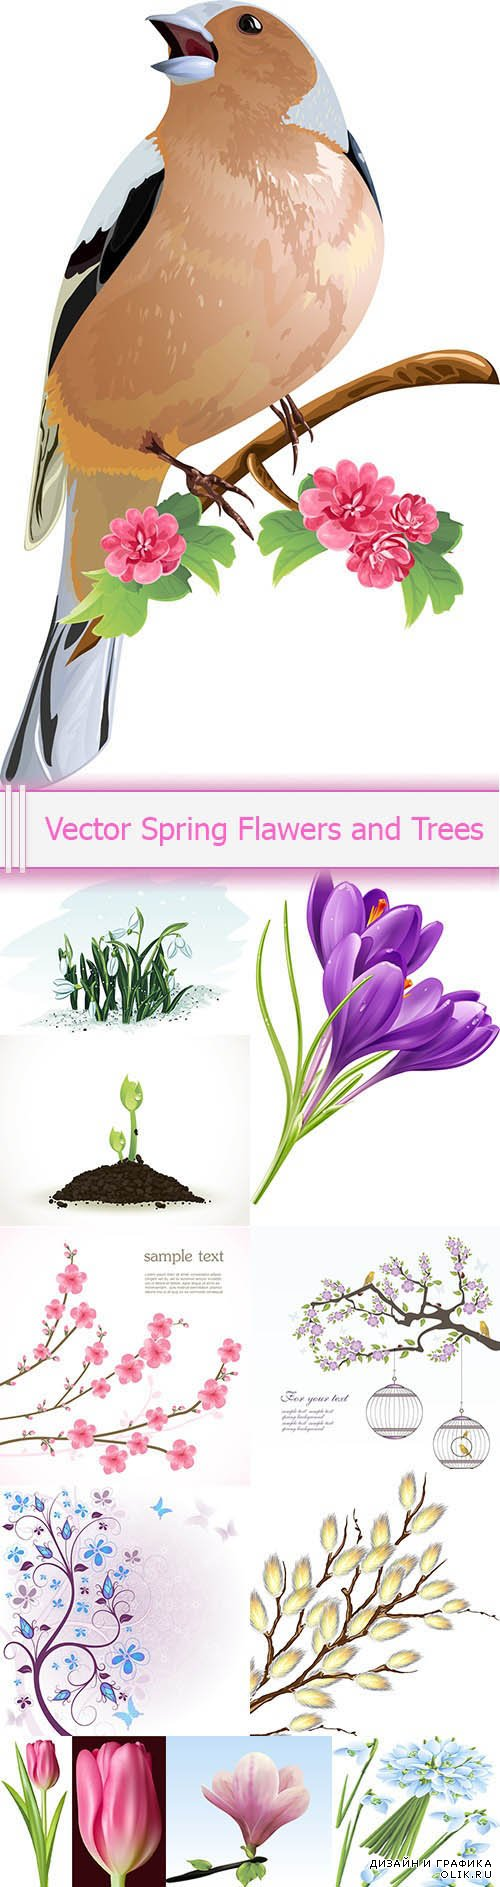 Vector Spring Flawers and Trees